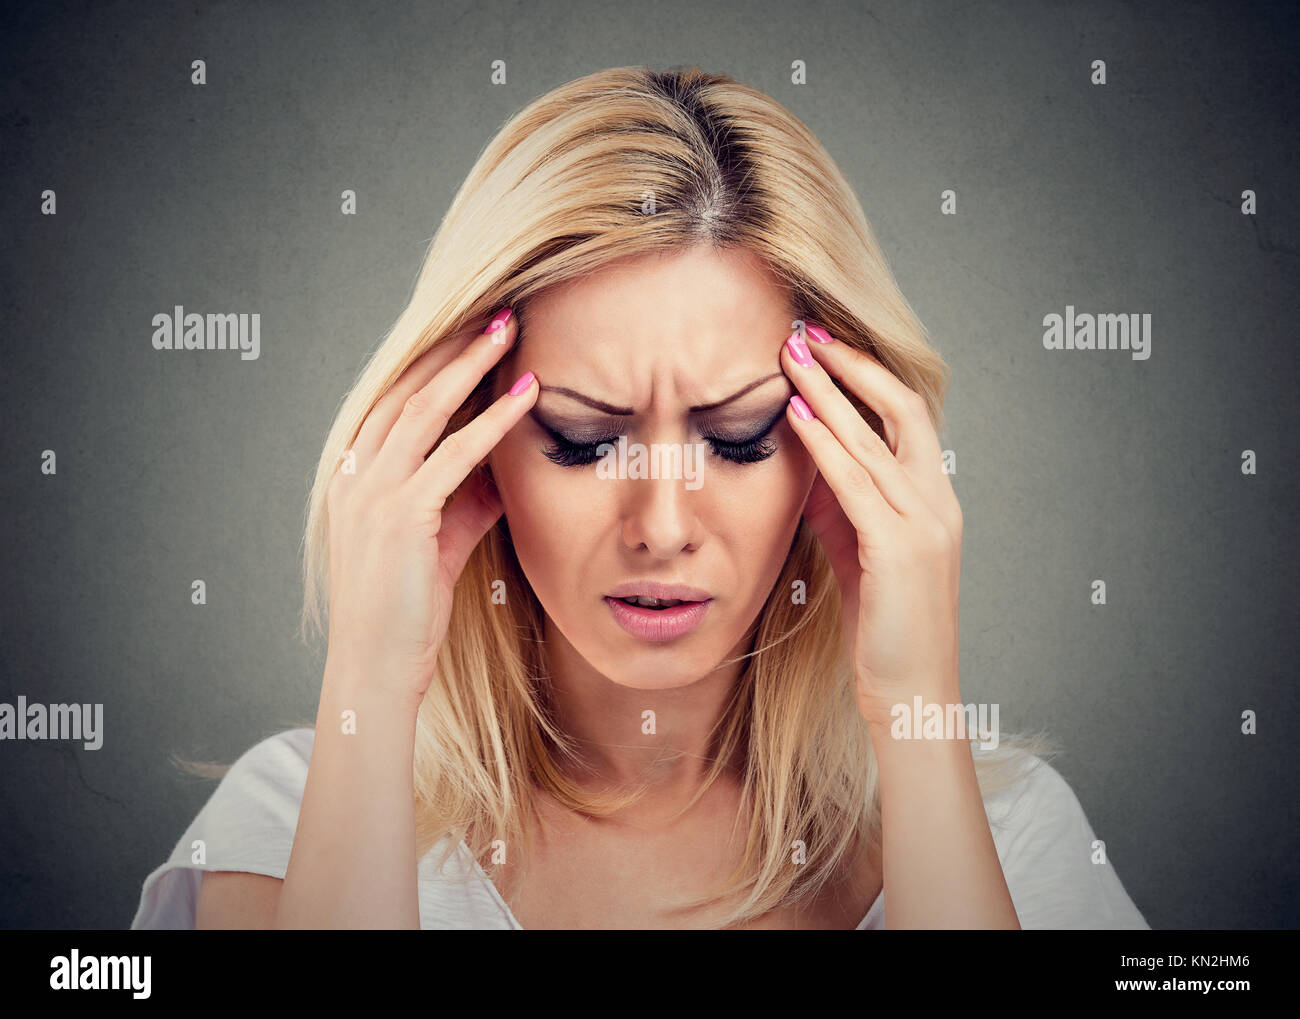 Closeup portrait sad woman with worried stressed face expression looking down - Stock Image